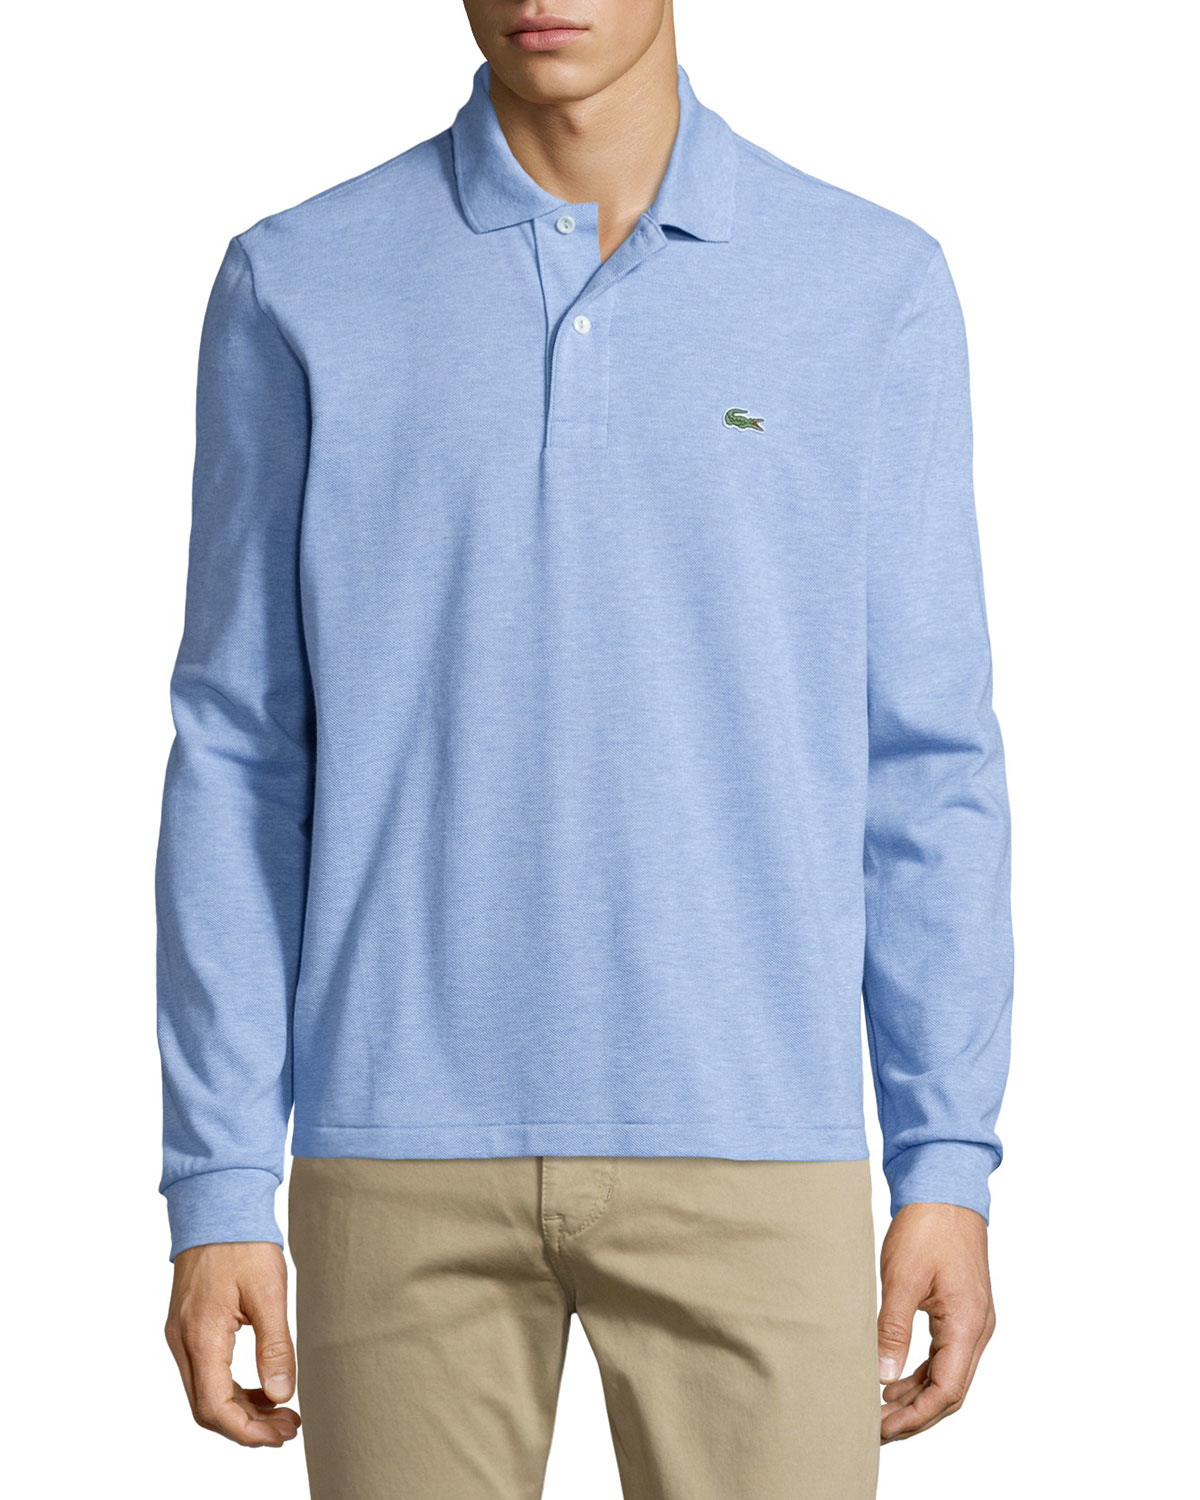 d6a649af Lacoste Long-sleeve Classic Pique Polo in Blue for Men - Lyst